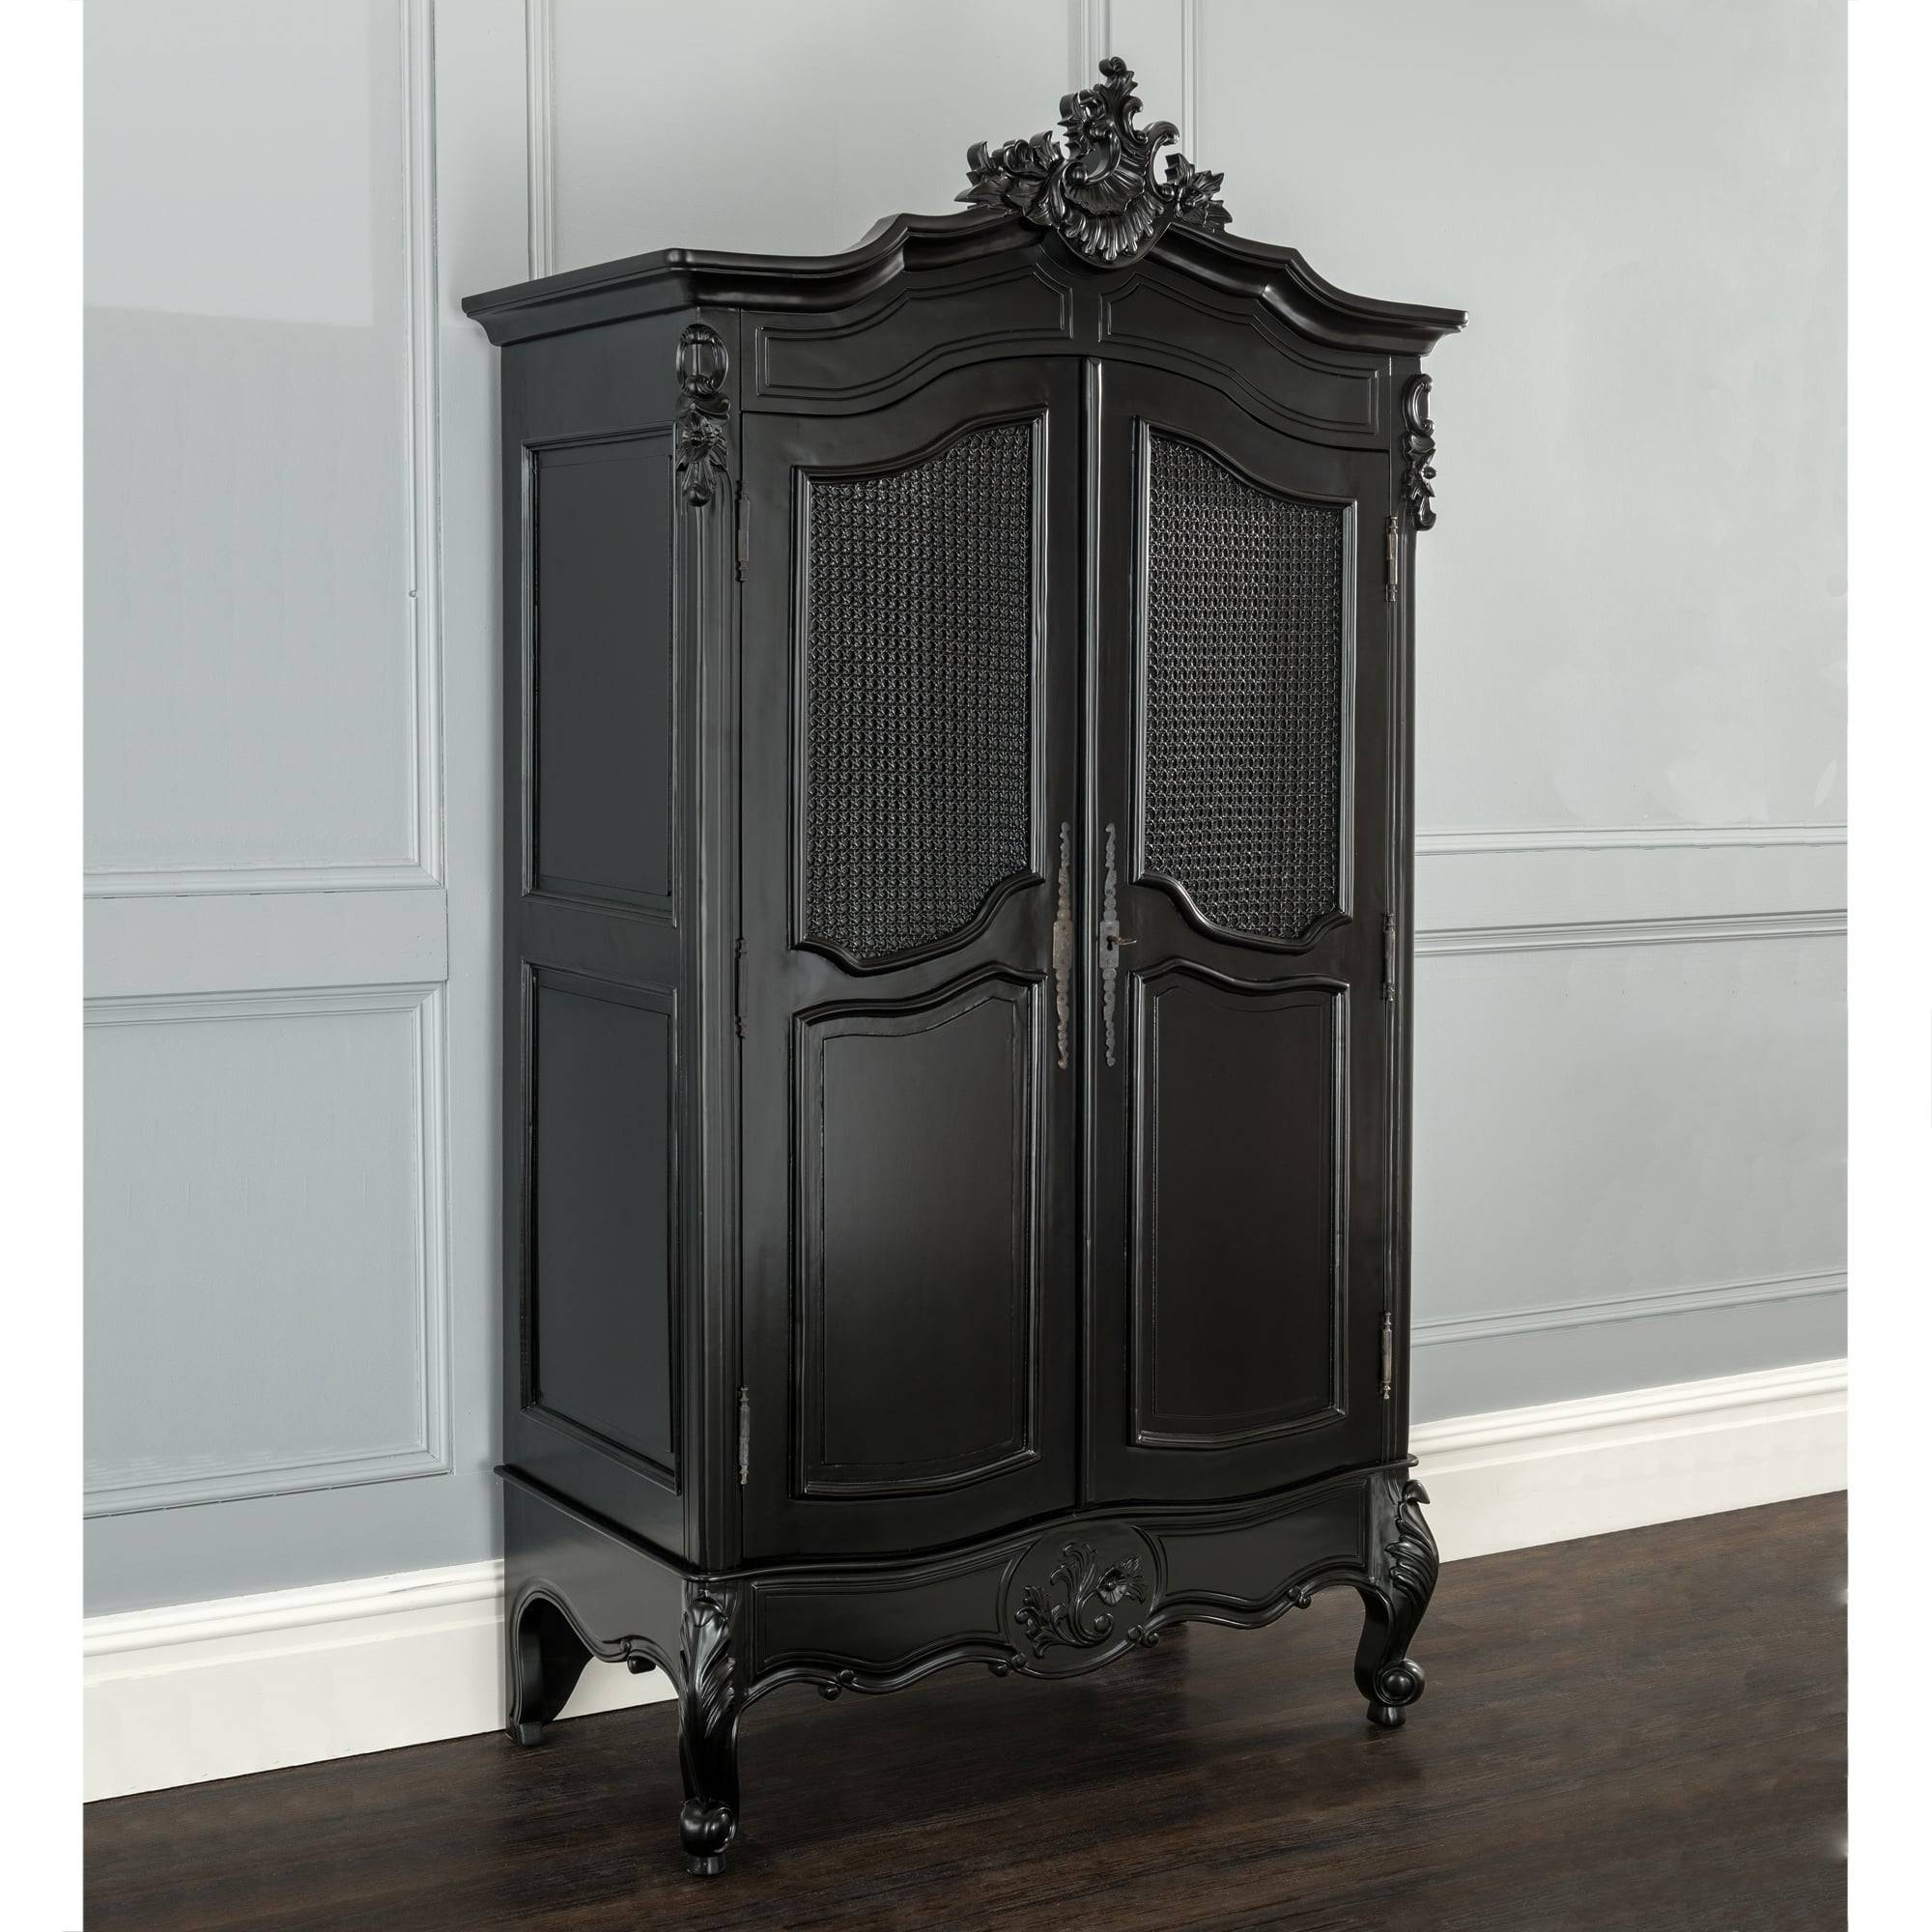 La Rochelle Antique French Wardrobe | Black Painted Furniture pertaining to Black French Wardrobes (Image 13 of 15)